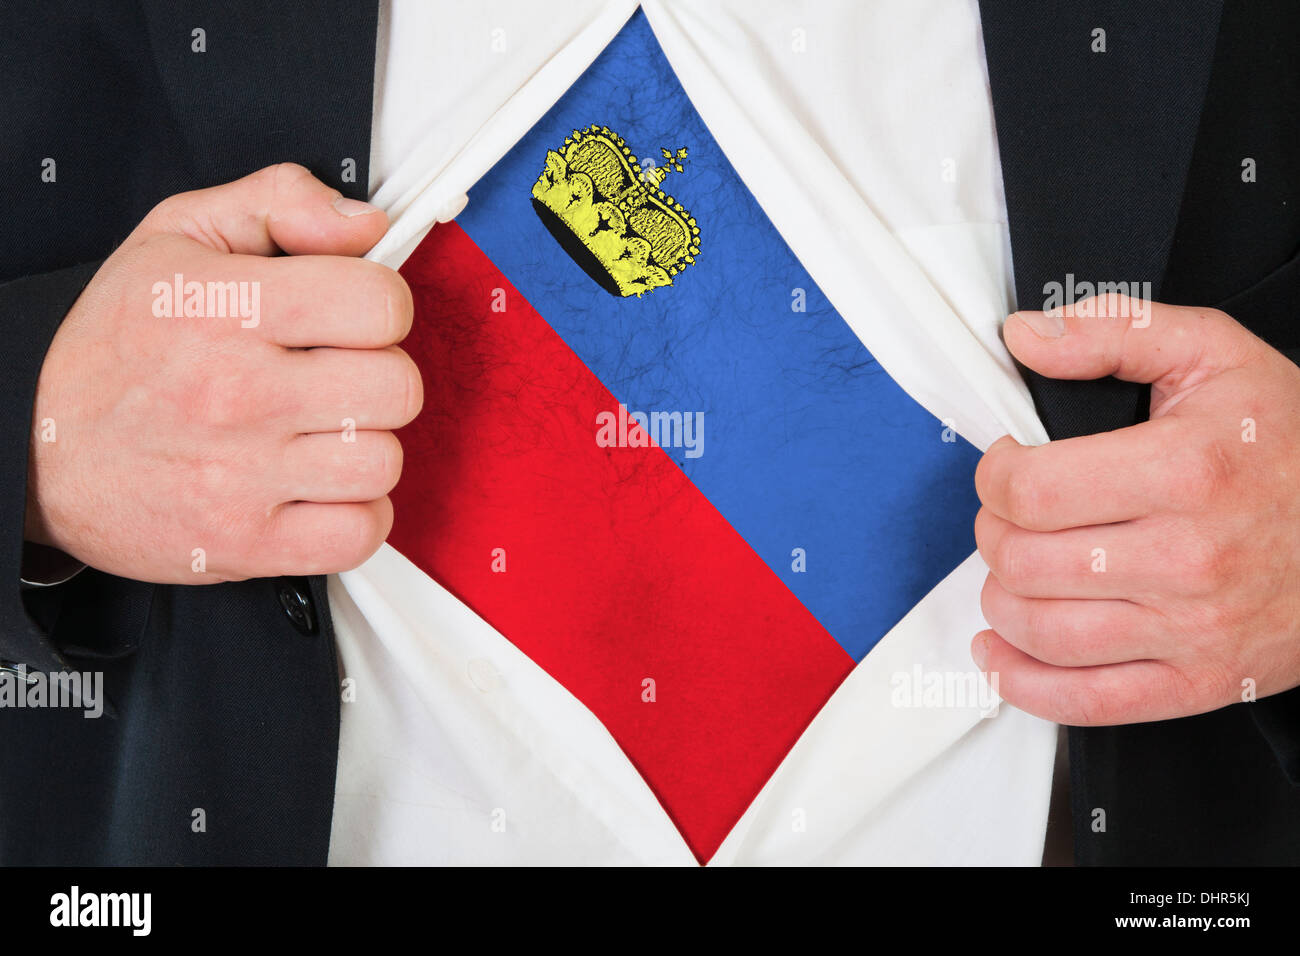 The Liechtenstein flag - Stock Image